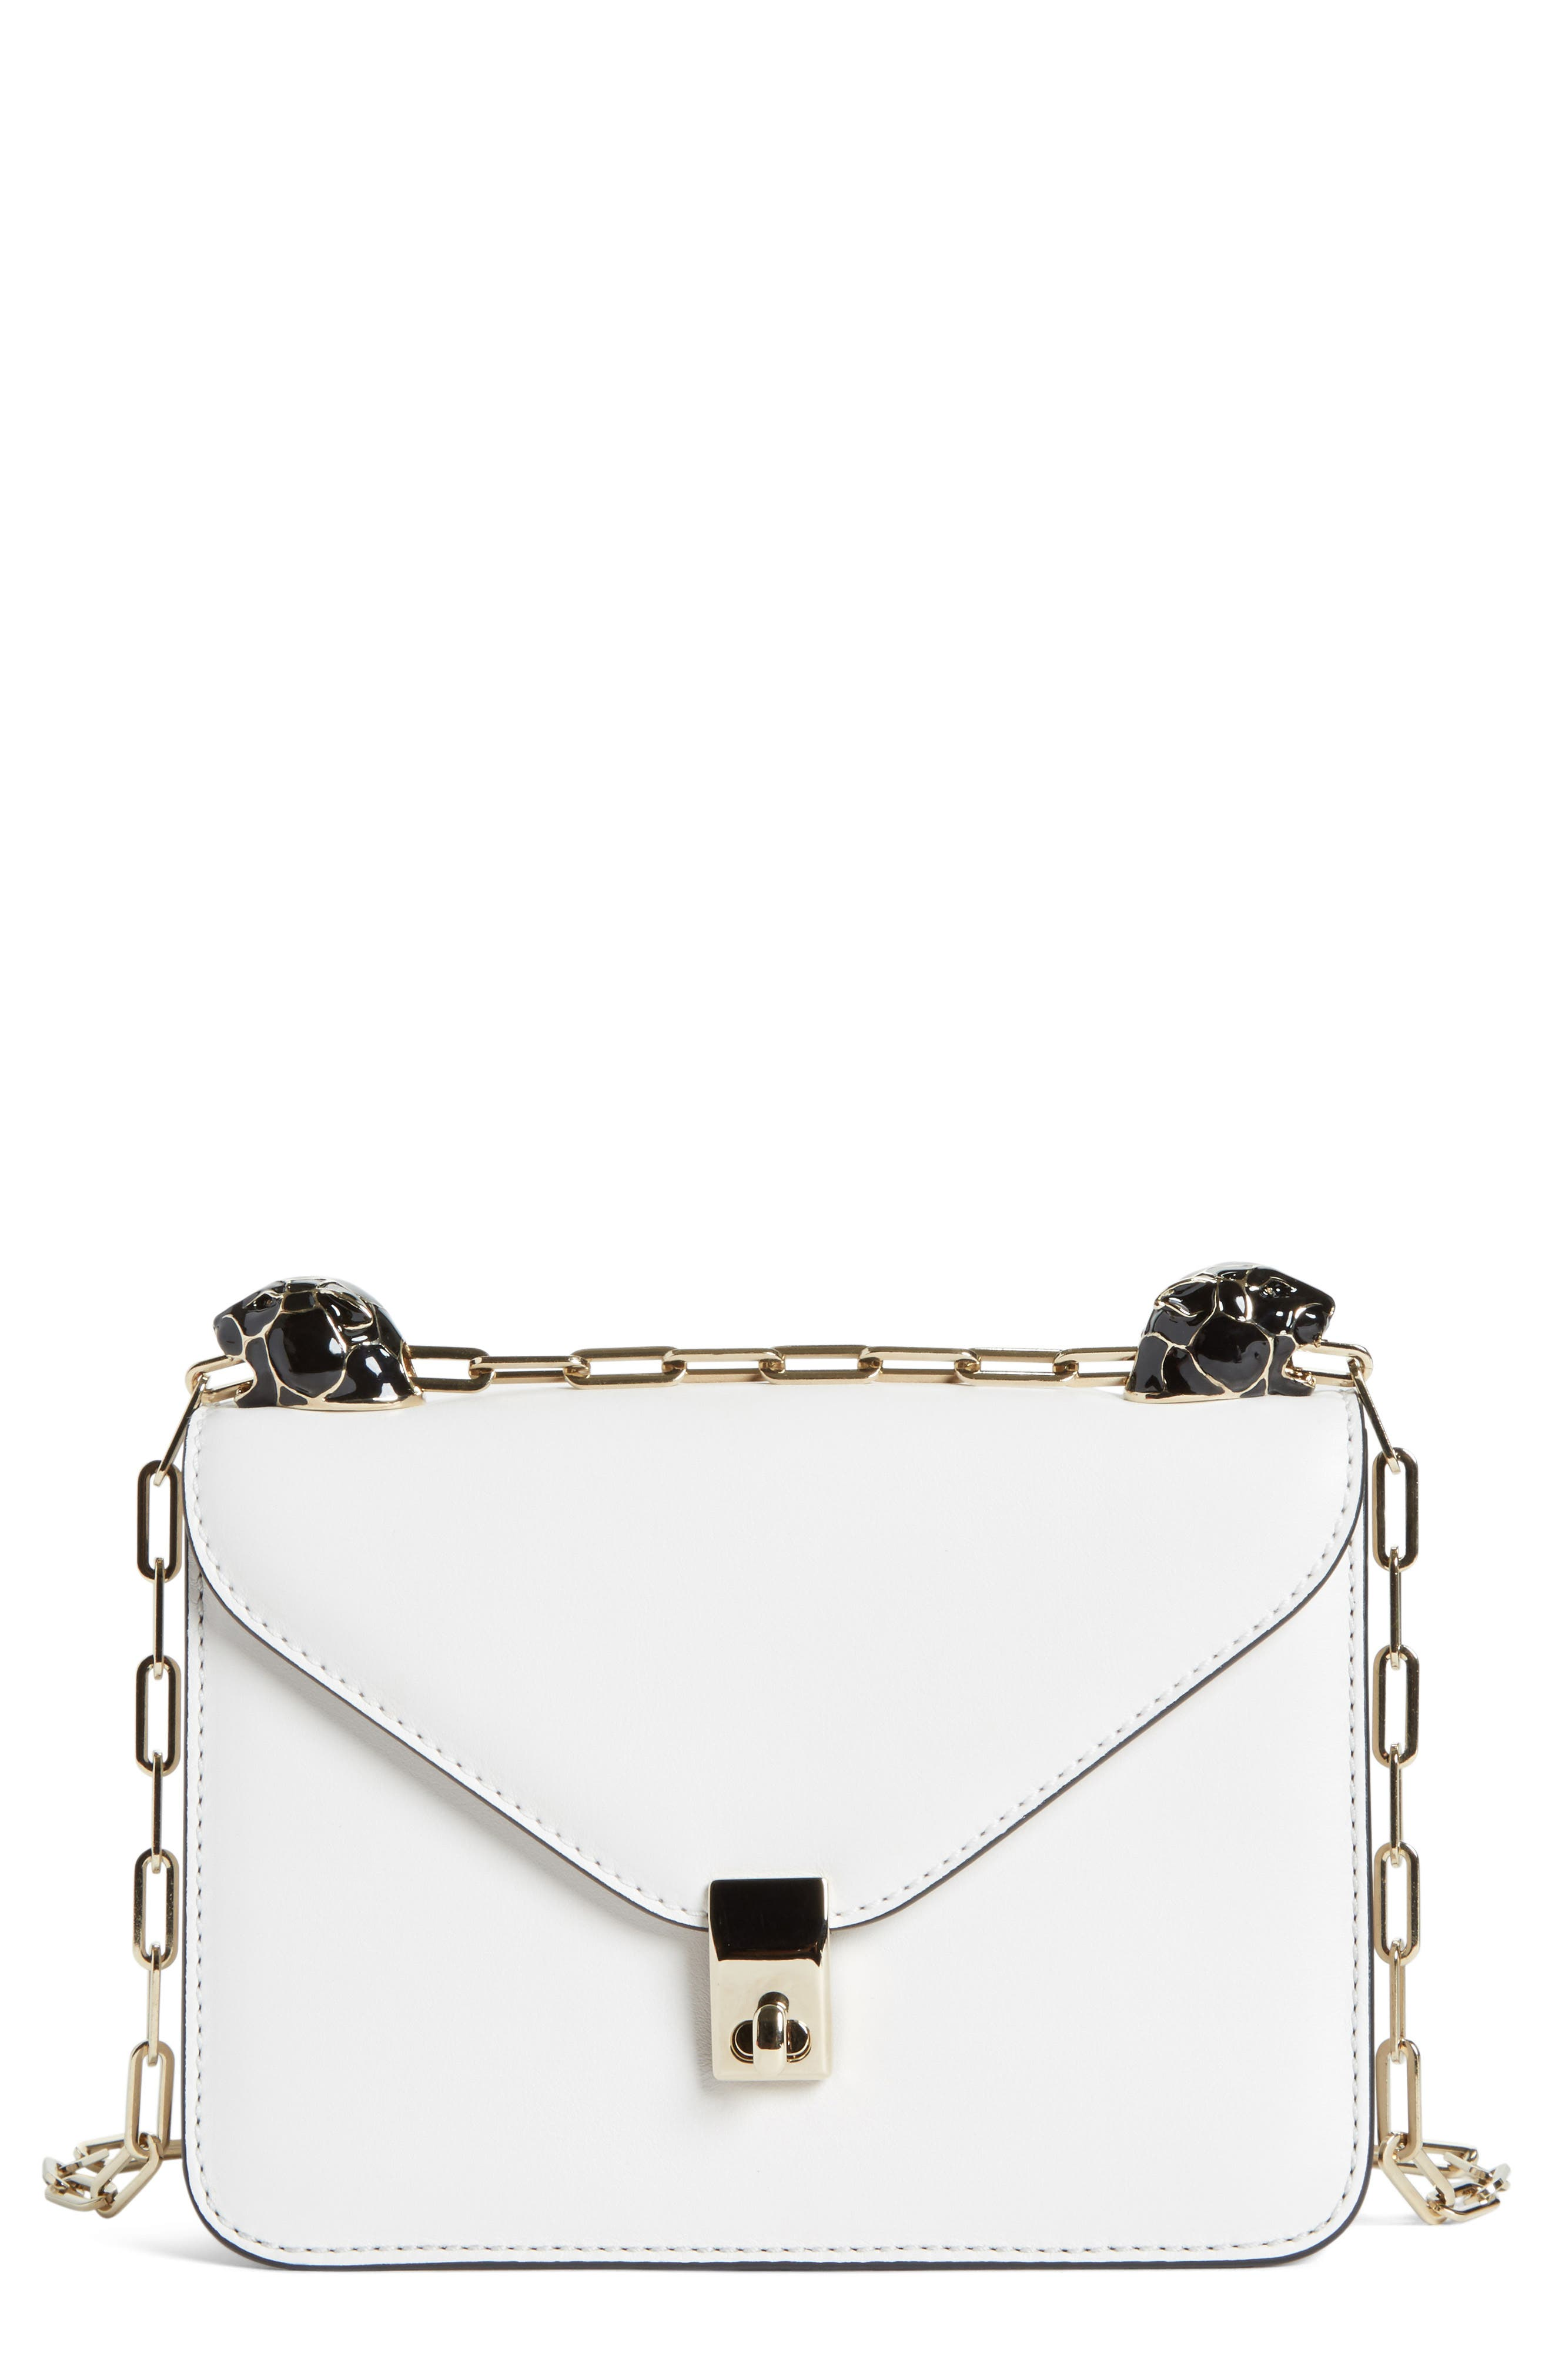 Small Panther Leather Shoulder Bag,                         Main,                         color, 100